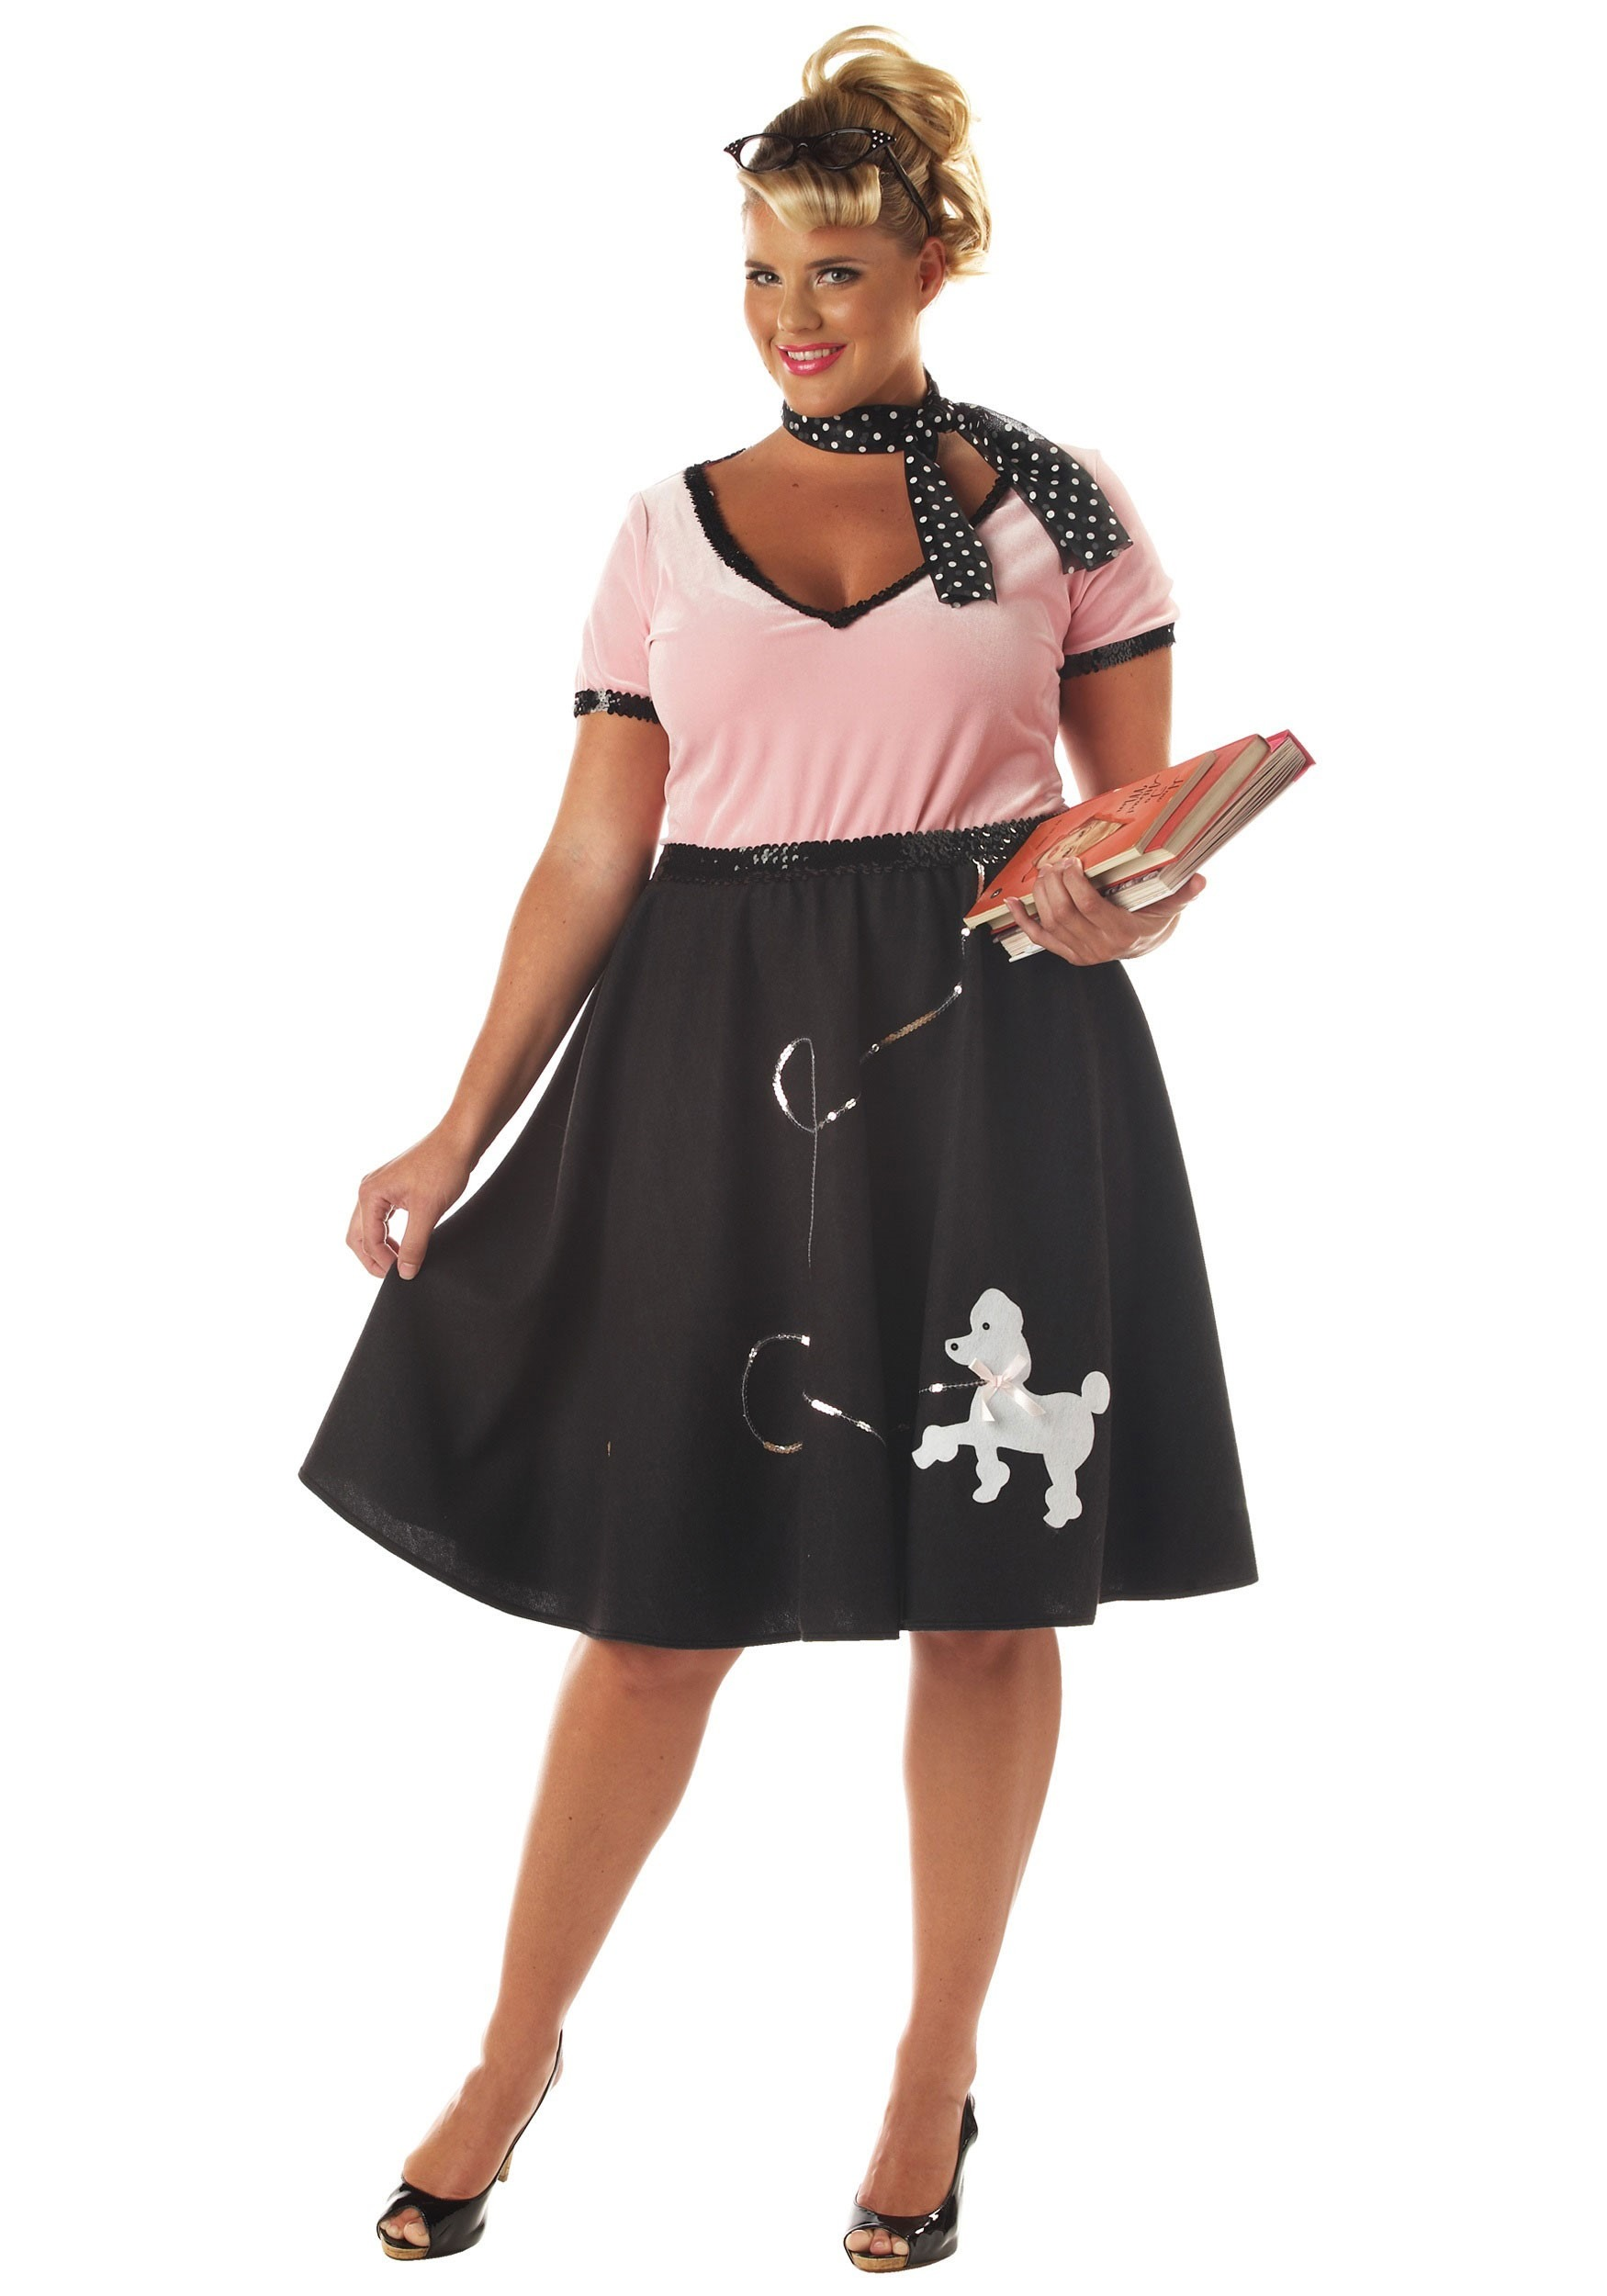 Ladies Plus Sock Hop Costume  sc 1 st  Halloween Costume & Ladies Plus Sock Hop Costume - Plus Size 1950s Costumes